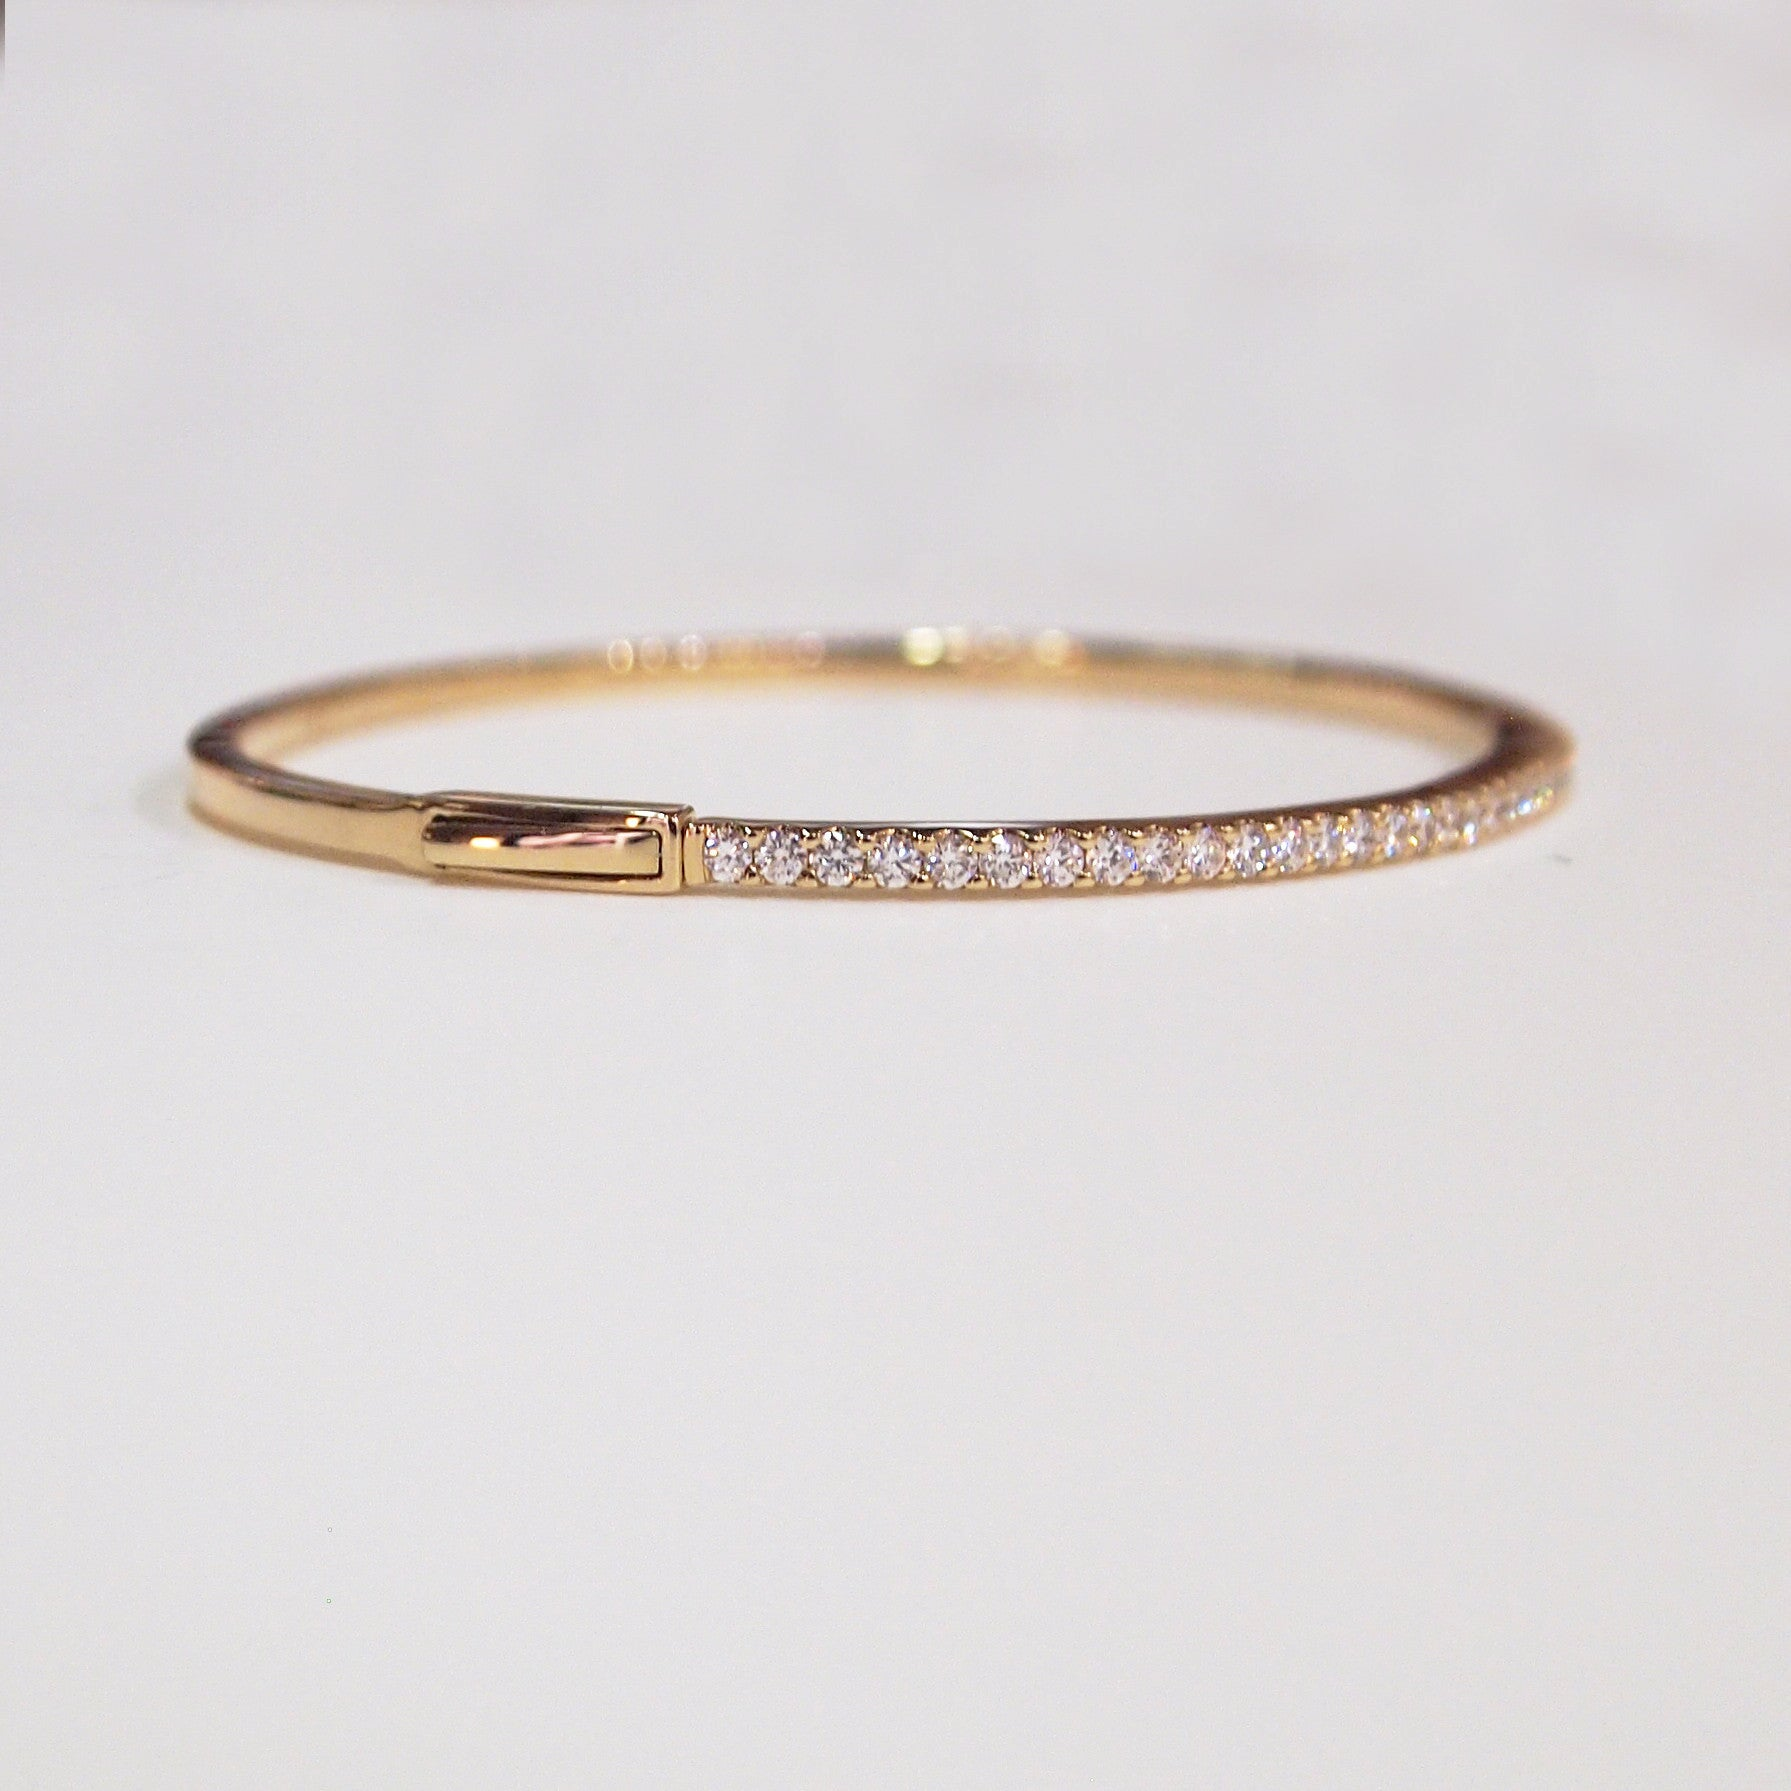 14K yellow gold bangle bracelet with 49 round brilliant cut diamonds